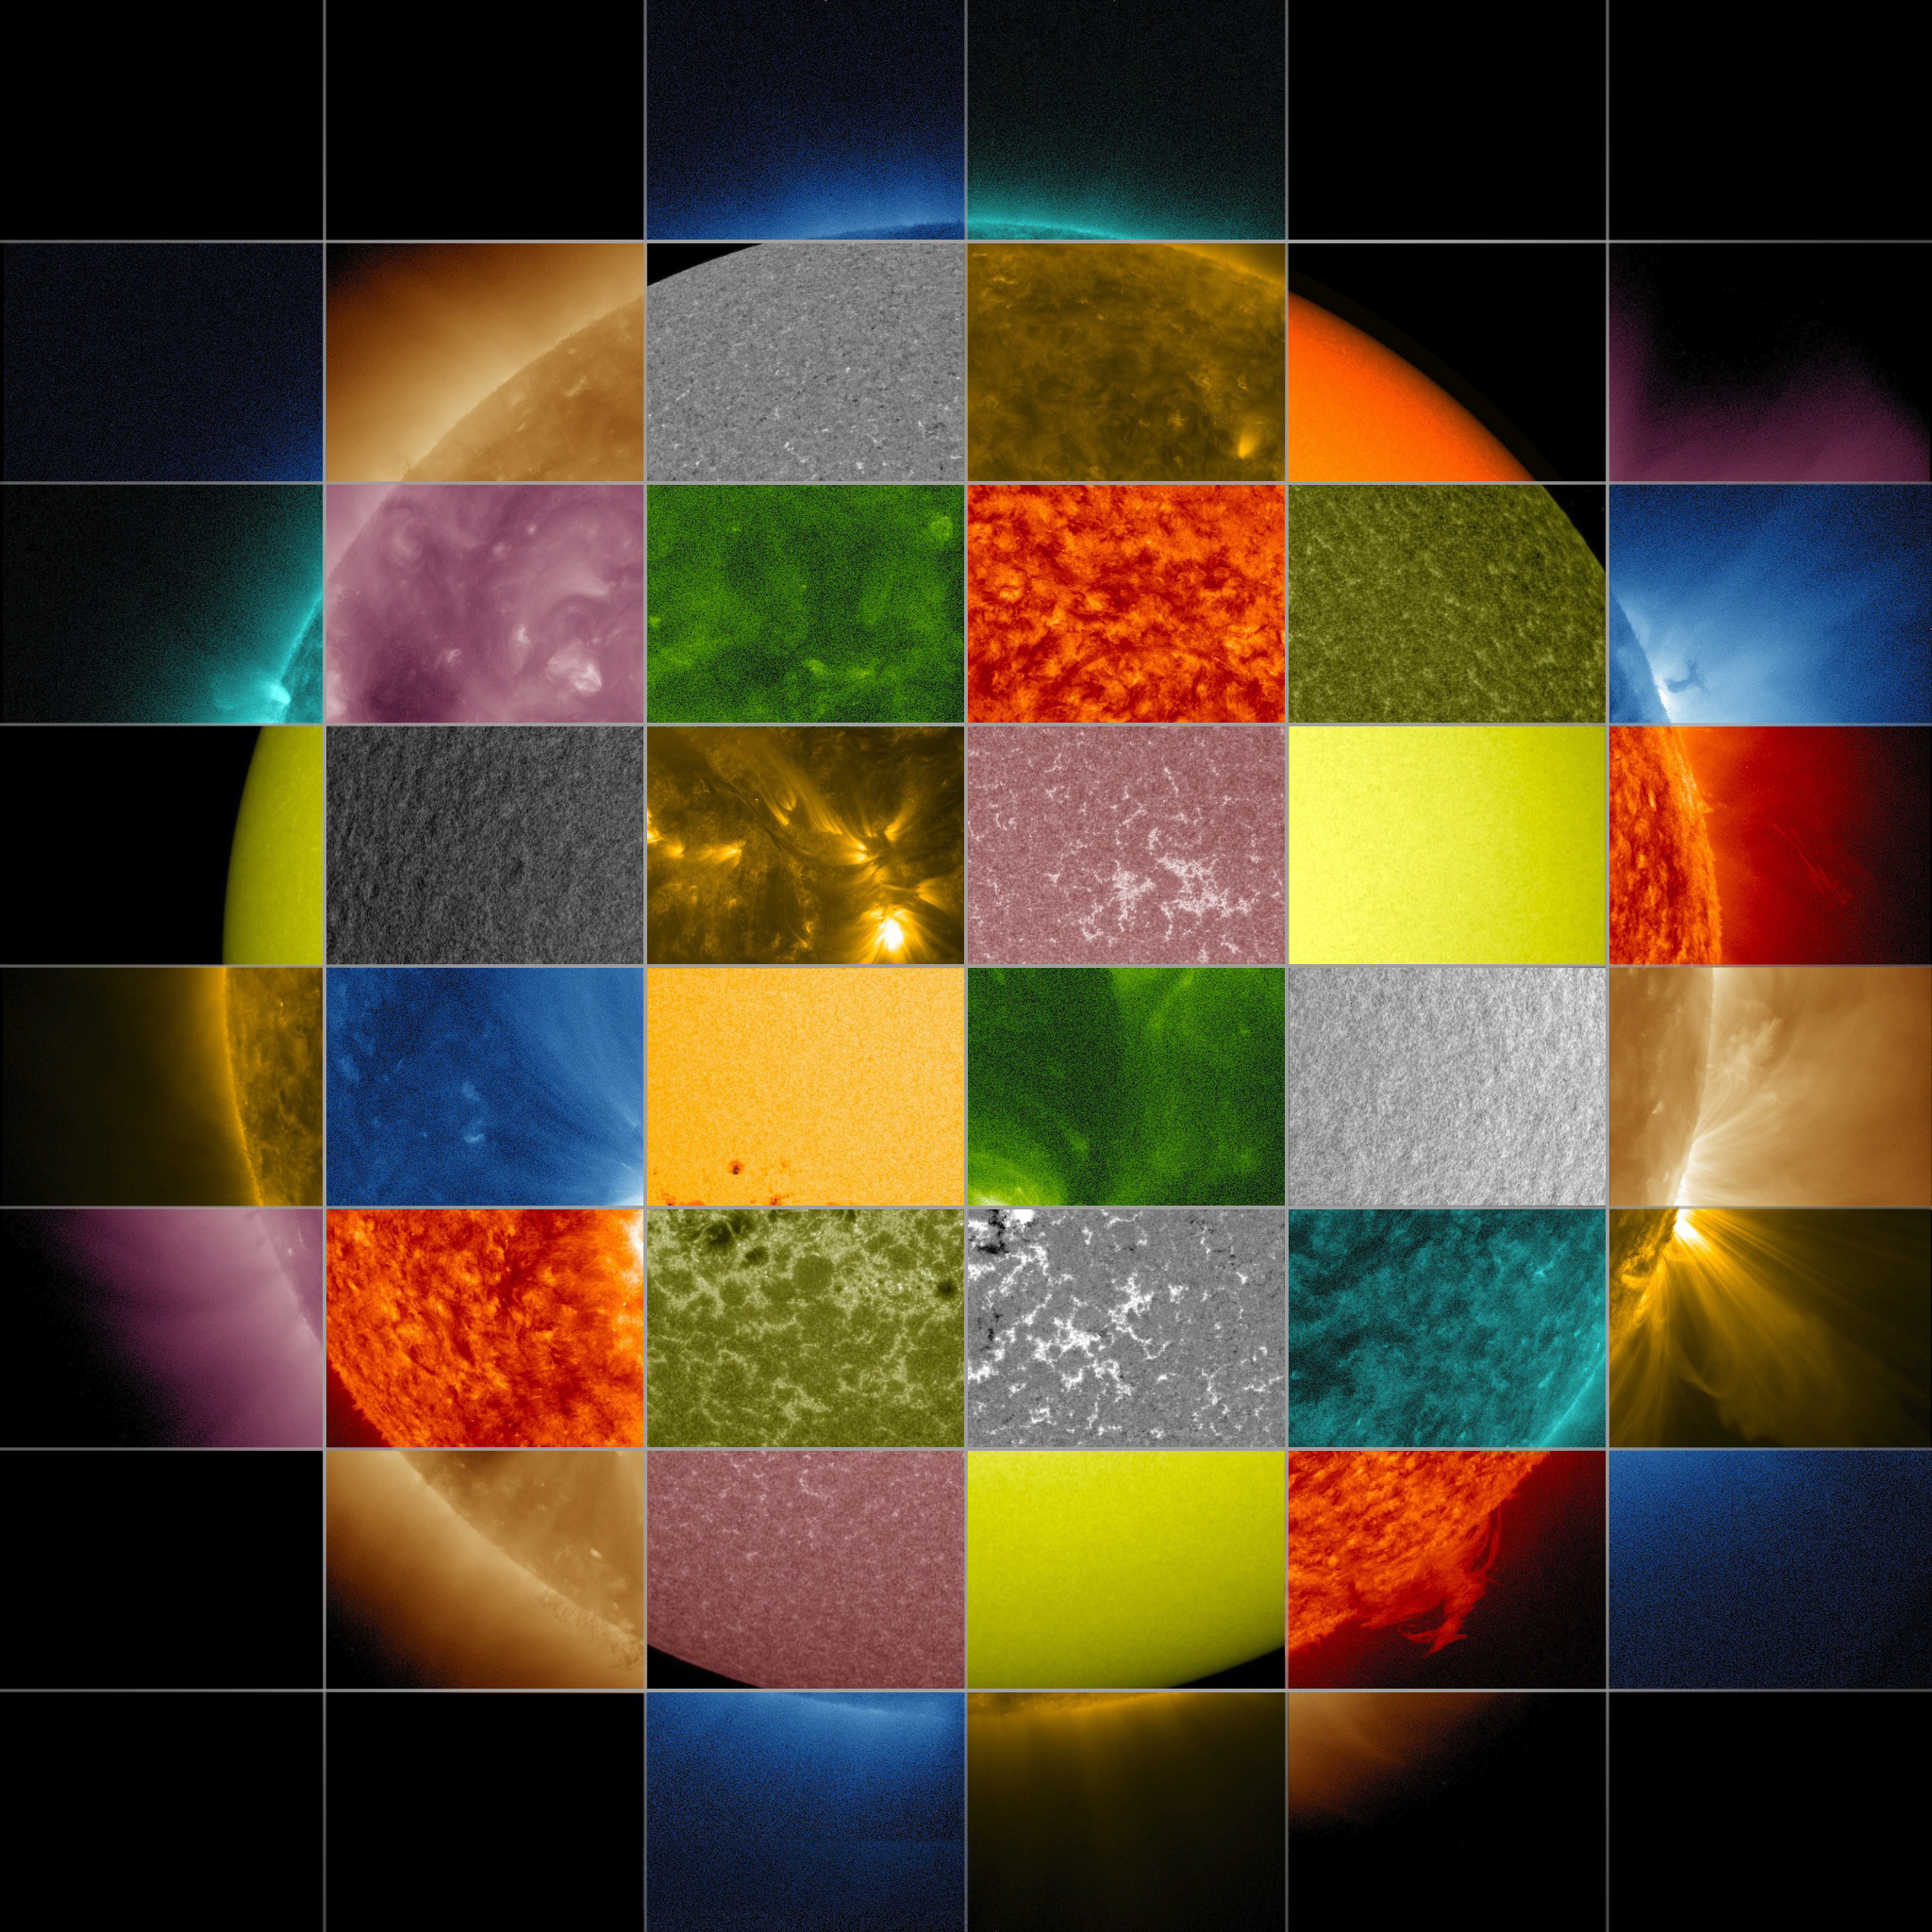 This collage of solar images from NASA's Solar Dynamics Observatory (SDO) shows how observations of the sun in different wavelengths helps highlight different aspects of the sun's surface and atmosphere. (The collage also includes images from other SDO instruments that display magnetic and Doppler information.) Credit: NASA/SDO/Goddard Space Flight Center